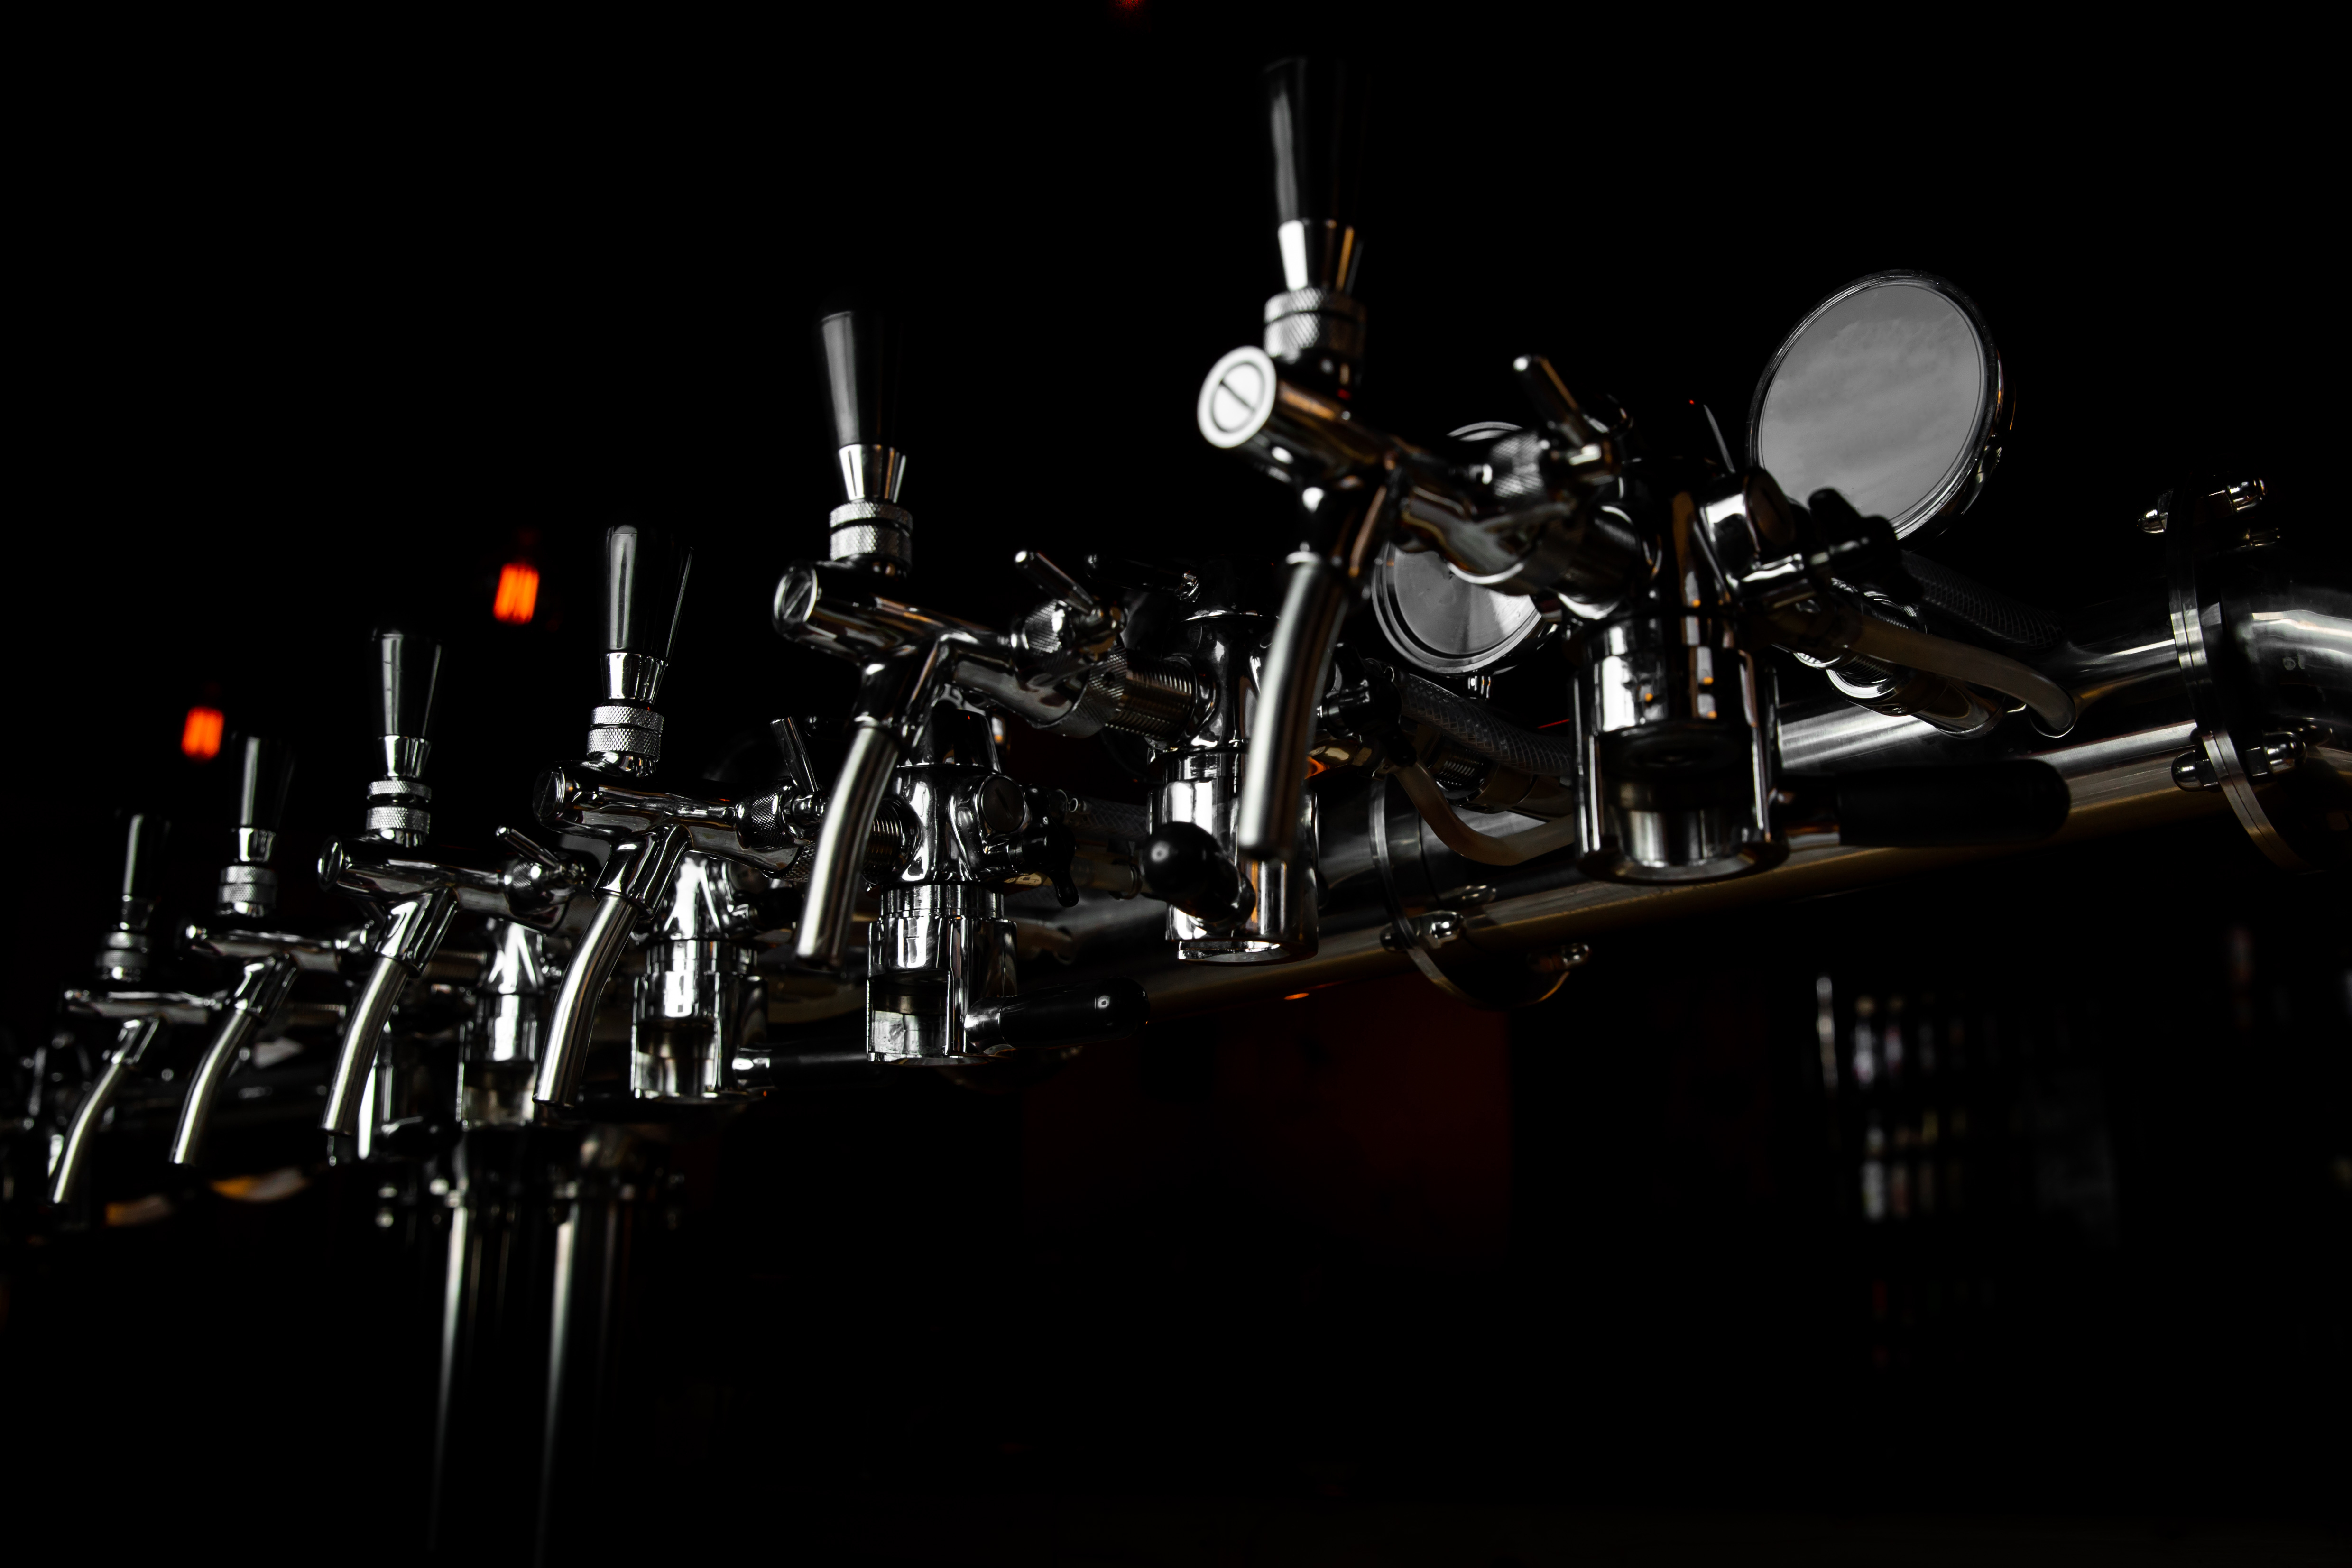 A view of taps in a darkened brewery